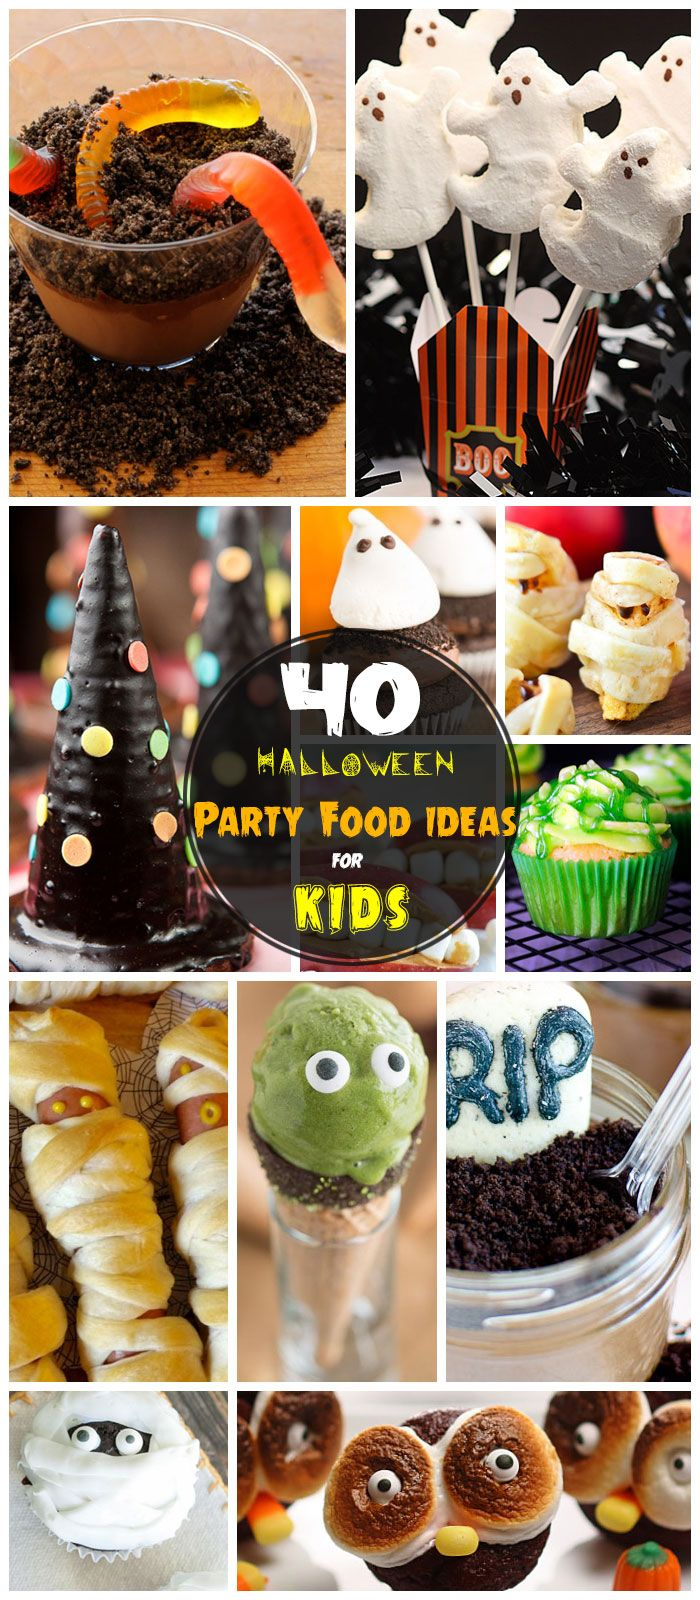 1000+ images about Halloween Party Ideas on Pinterest   Chocolate ...